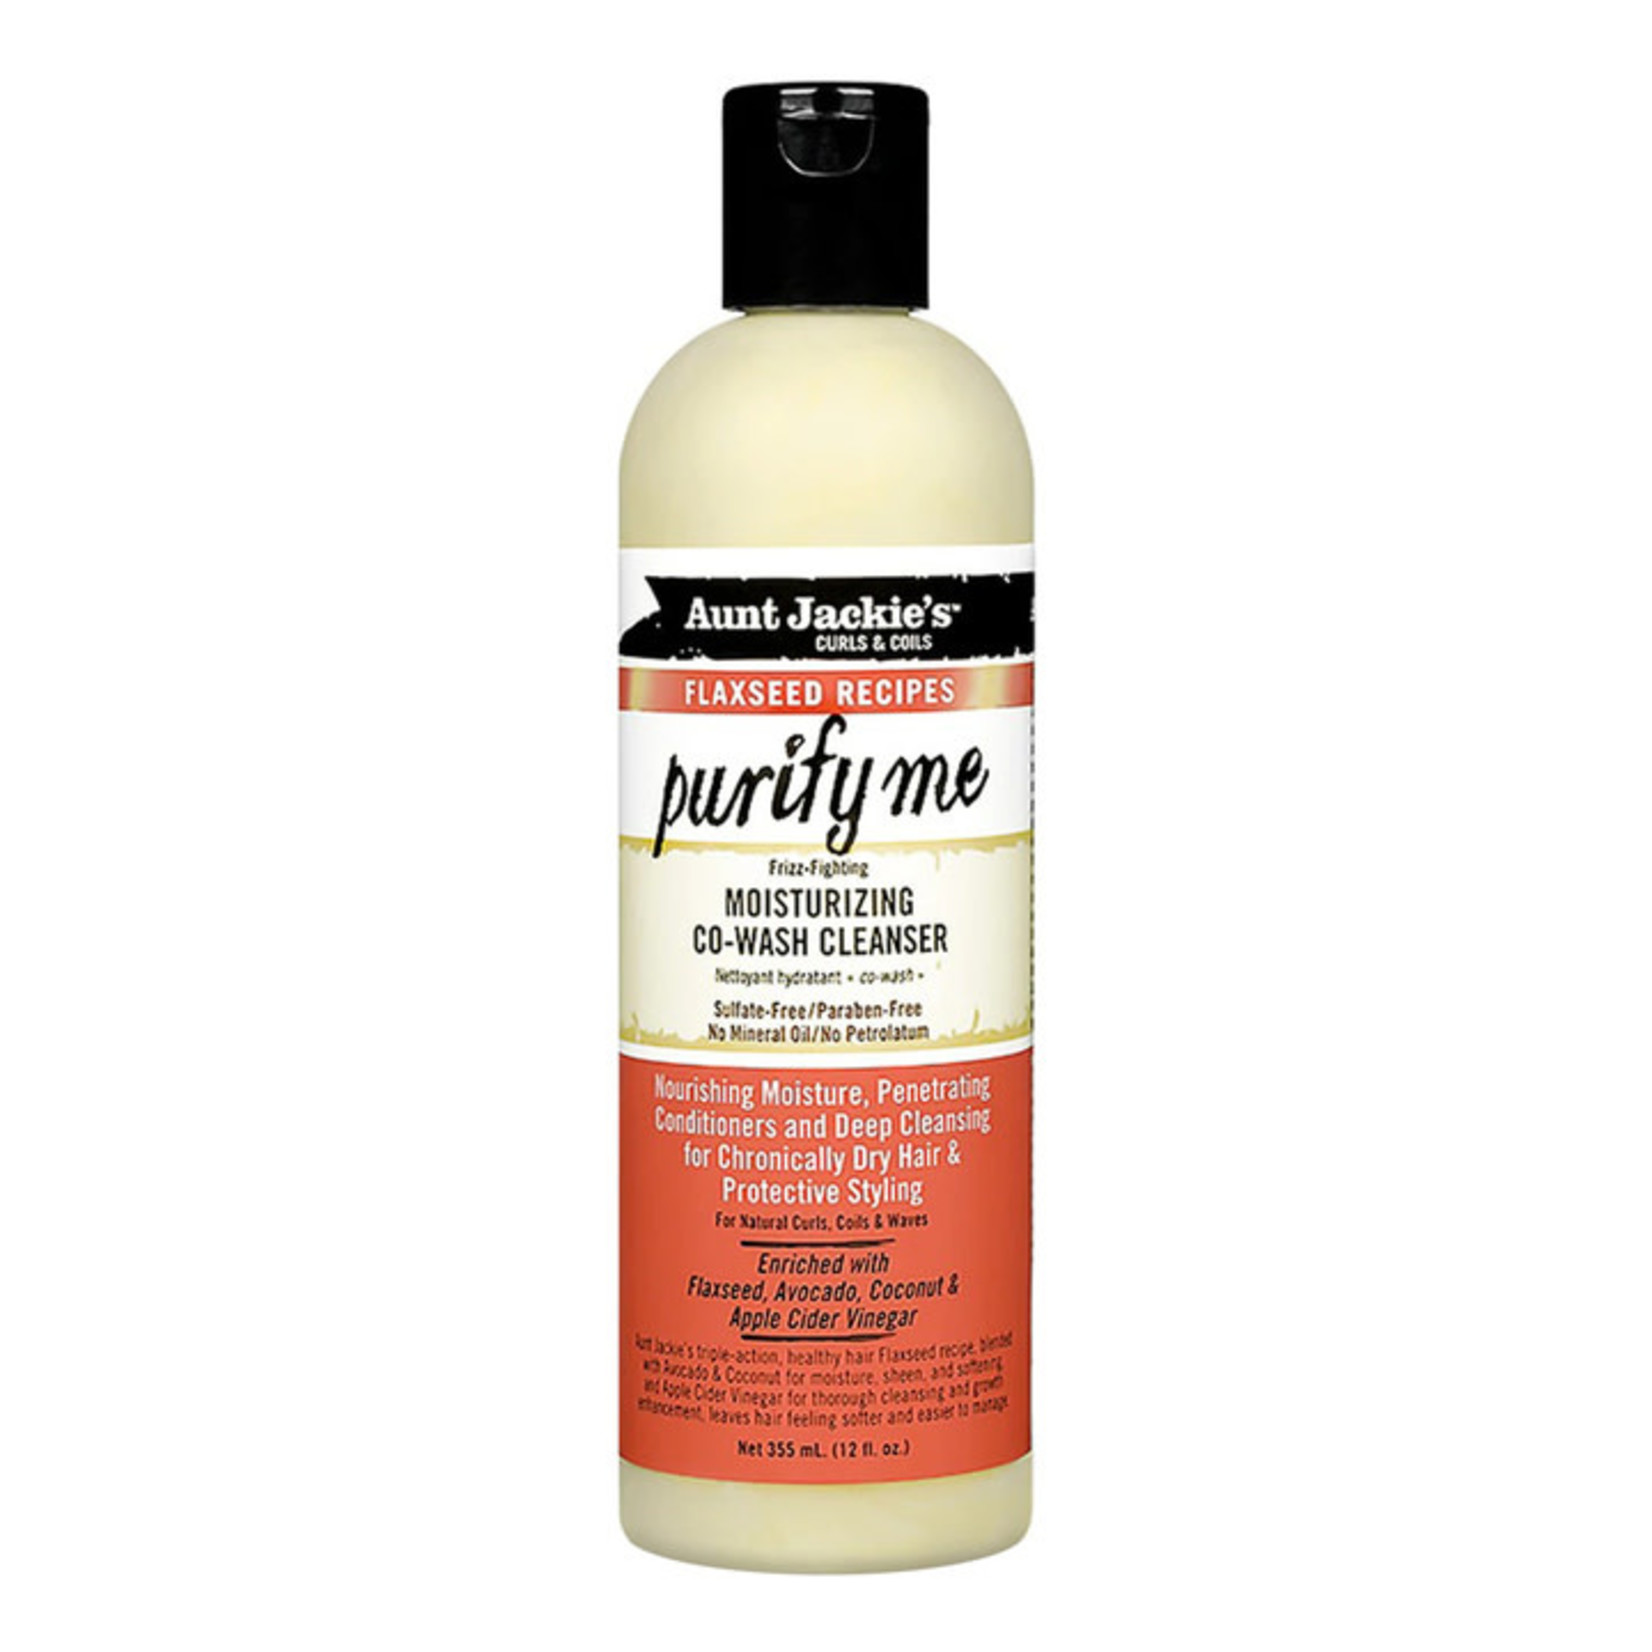 AUNT JACKIE'S AUNT JACKIE'S FLAXSEED RECIPES PURIFY ME MOISTURIZING CO-WASH CLEANSER [12OZ]